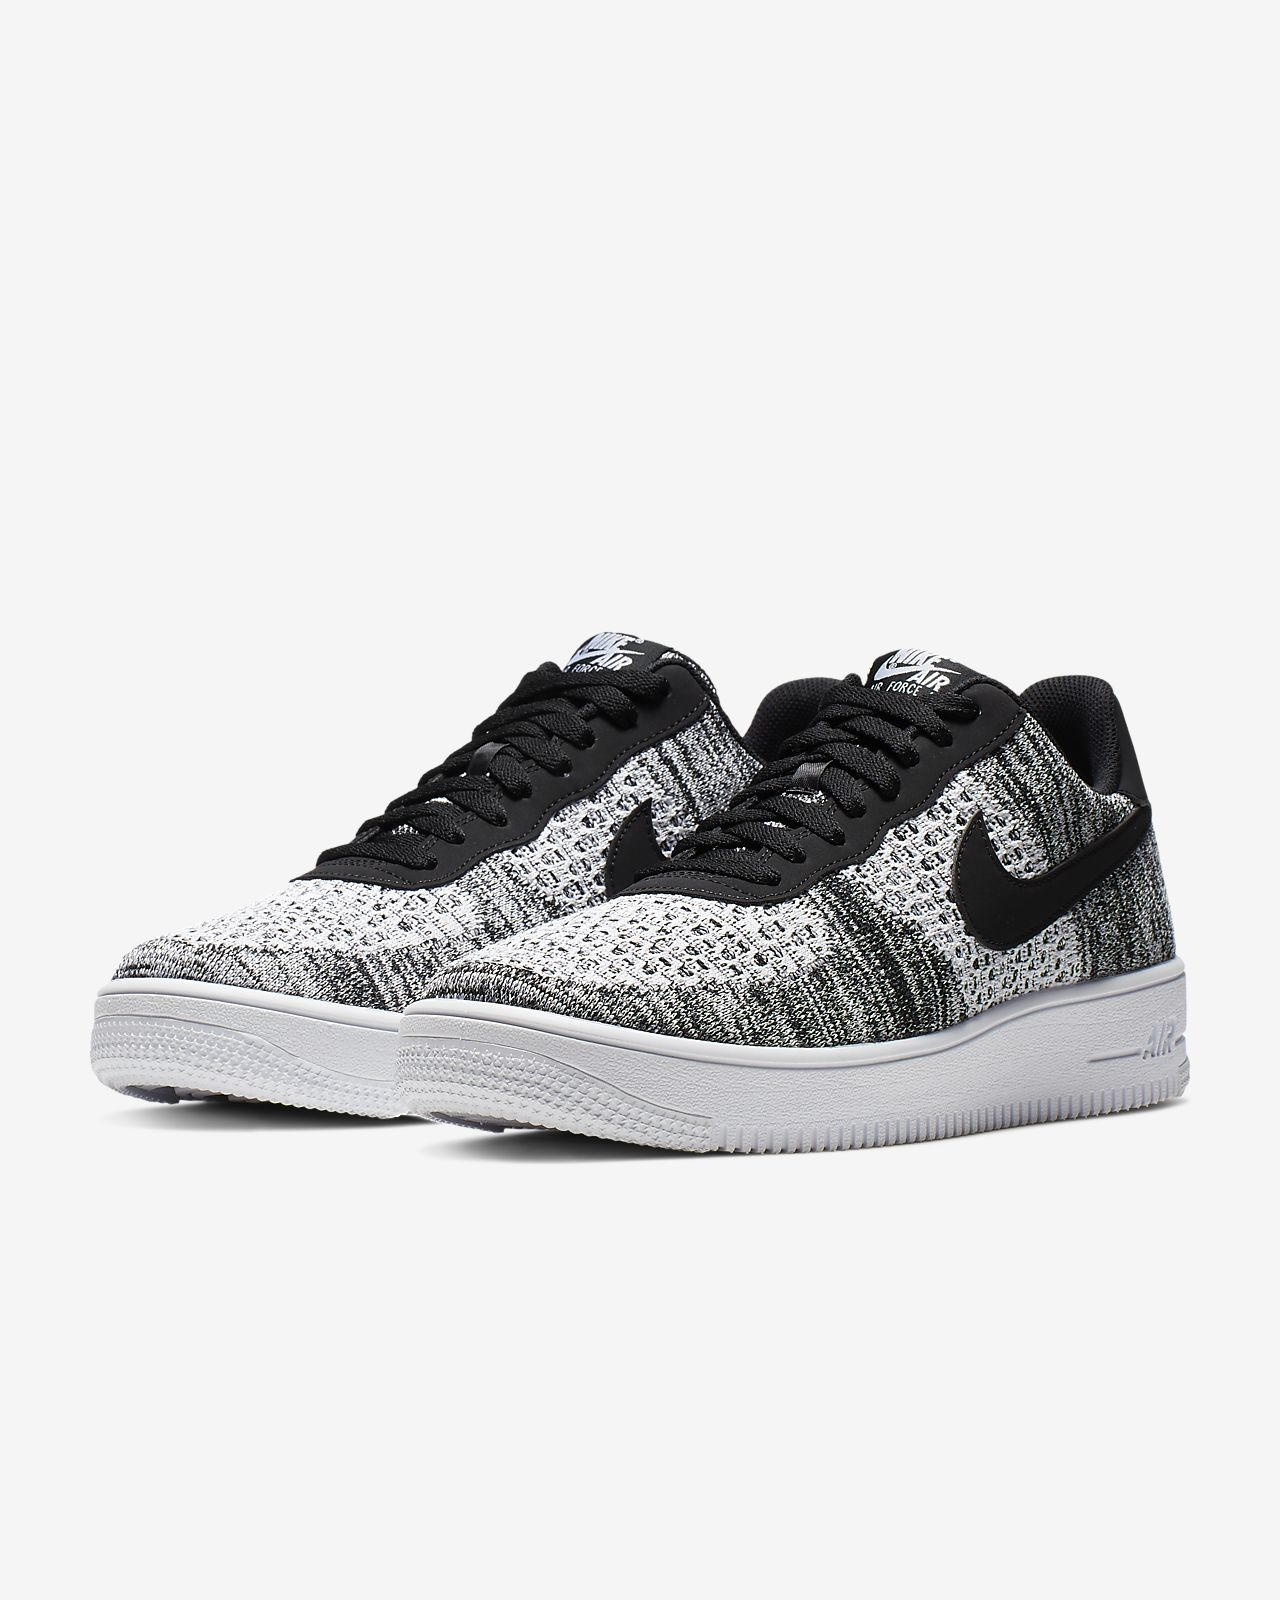 0 Nike Air Chaussures Homme De Basketball 2 1 Force Flyknit mN8Ov0nw